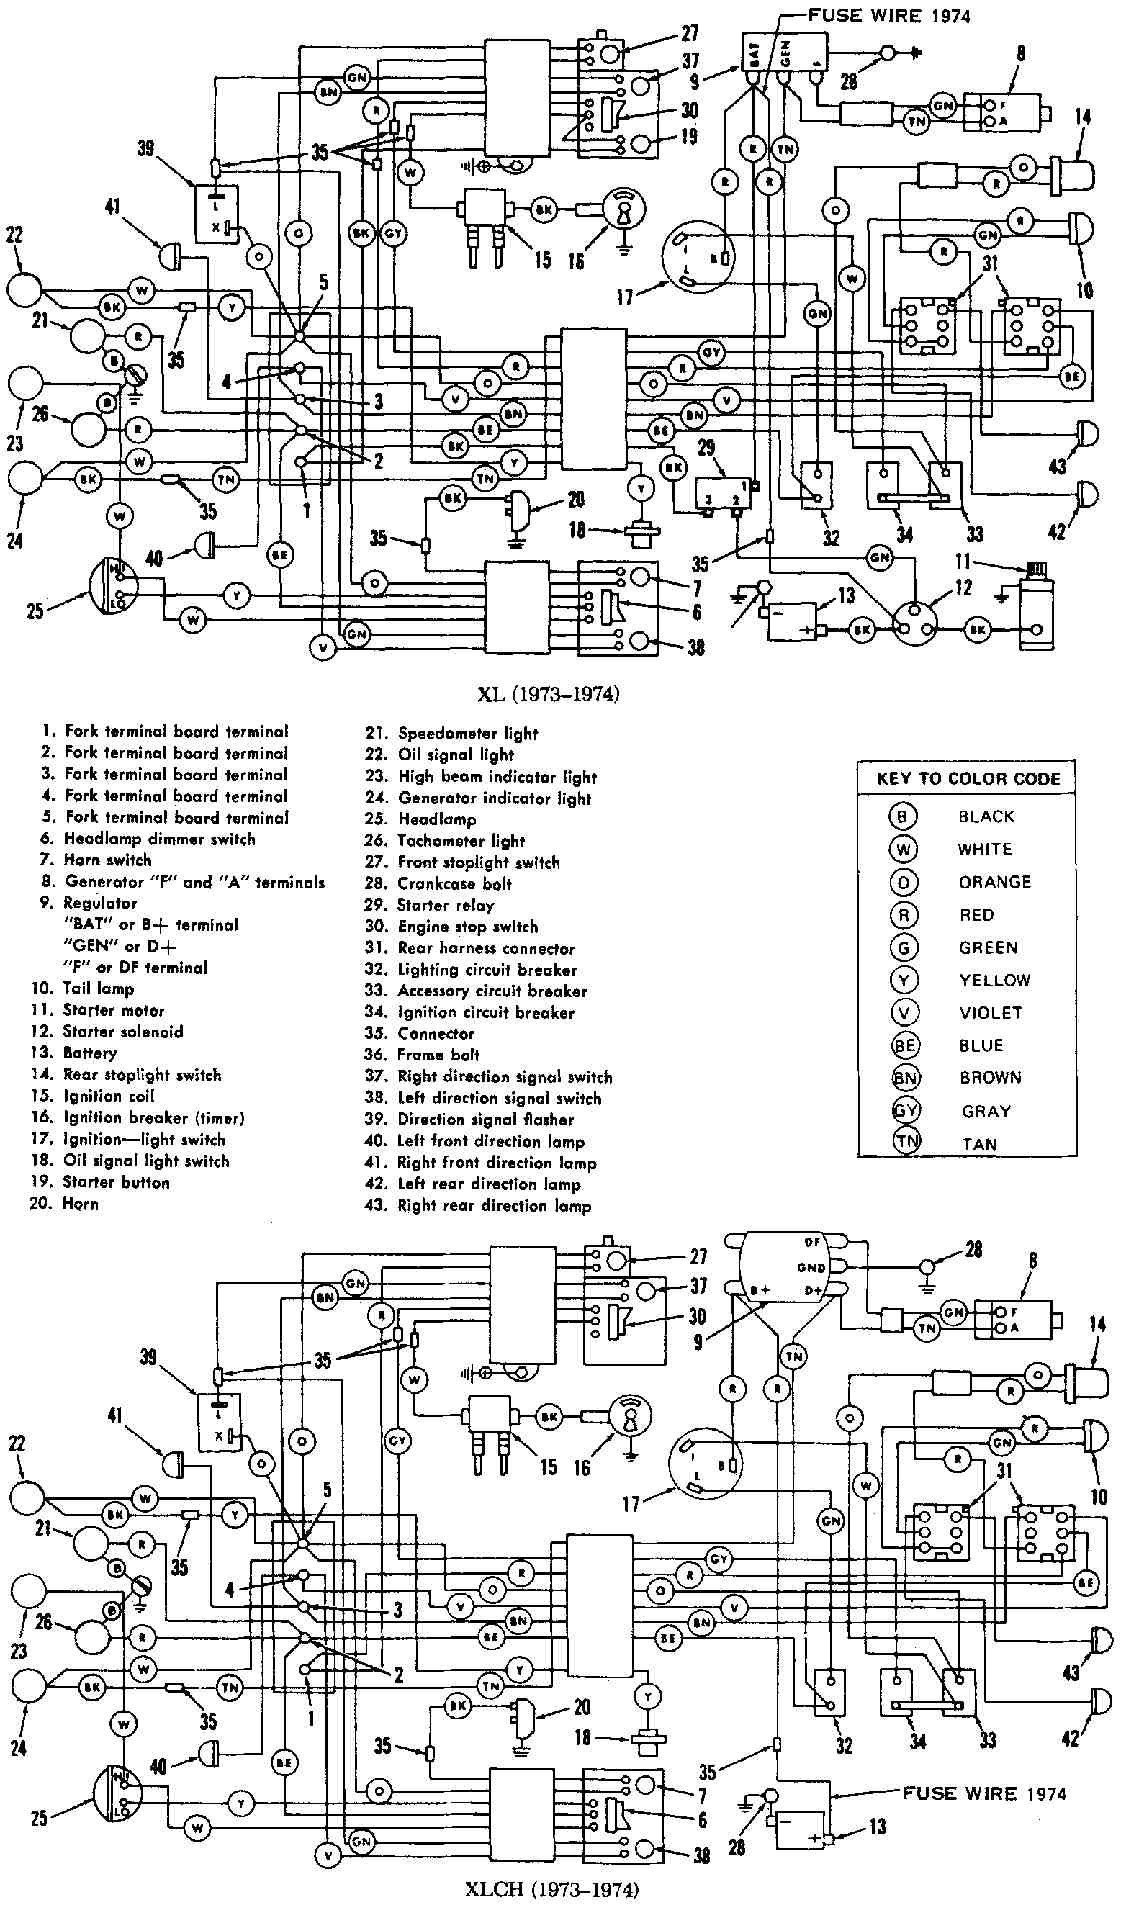 Fxef Wiring Diagram - Auto Electrical Wiring Diagram - Harley Davidson Headlight Wiring Diagram